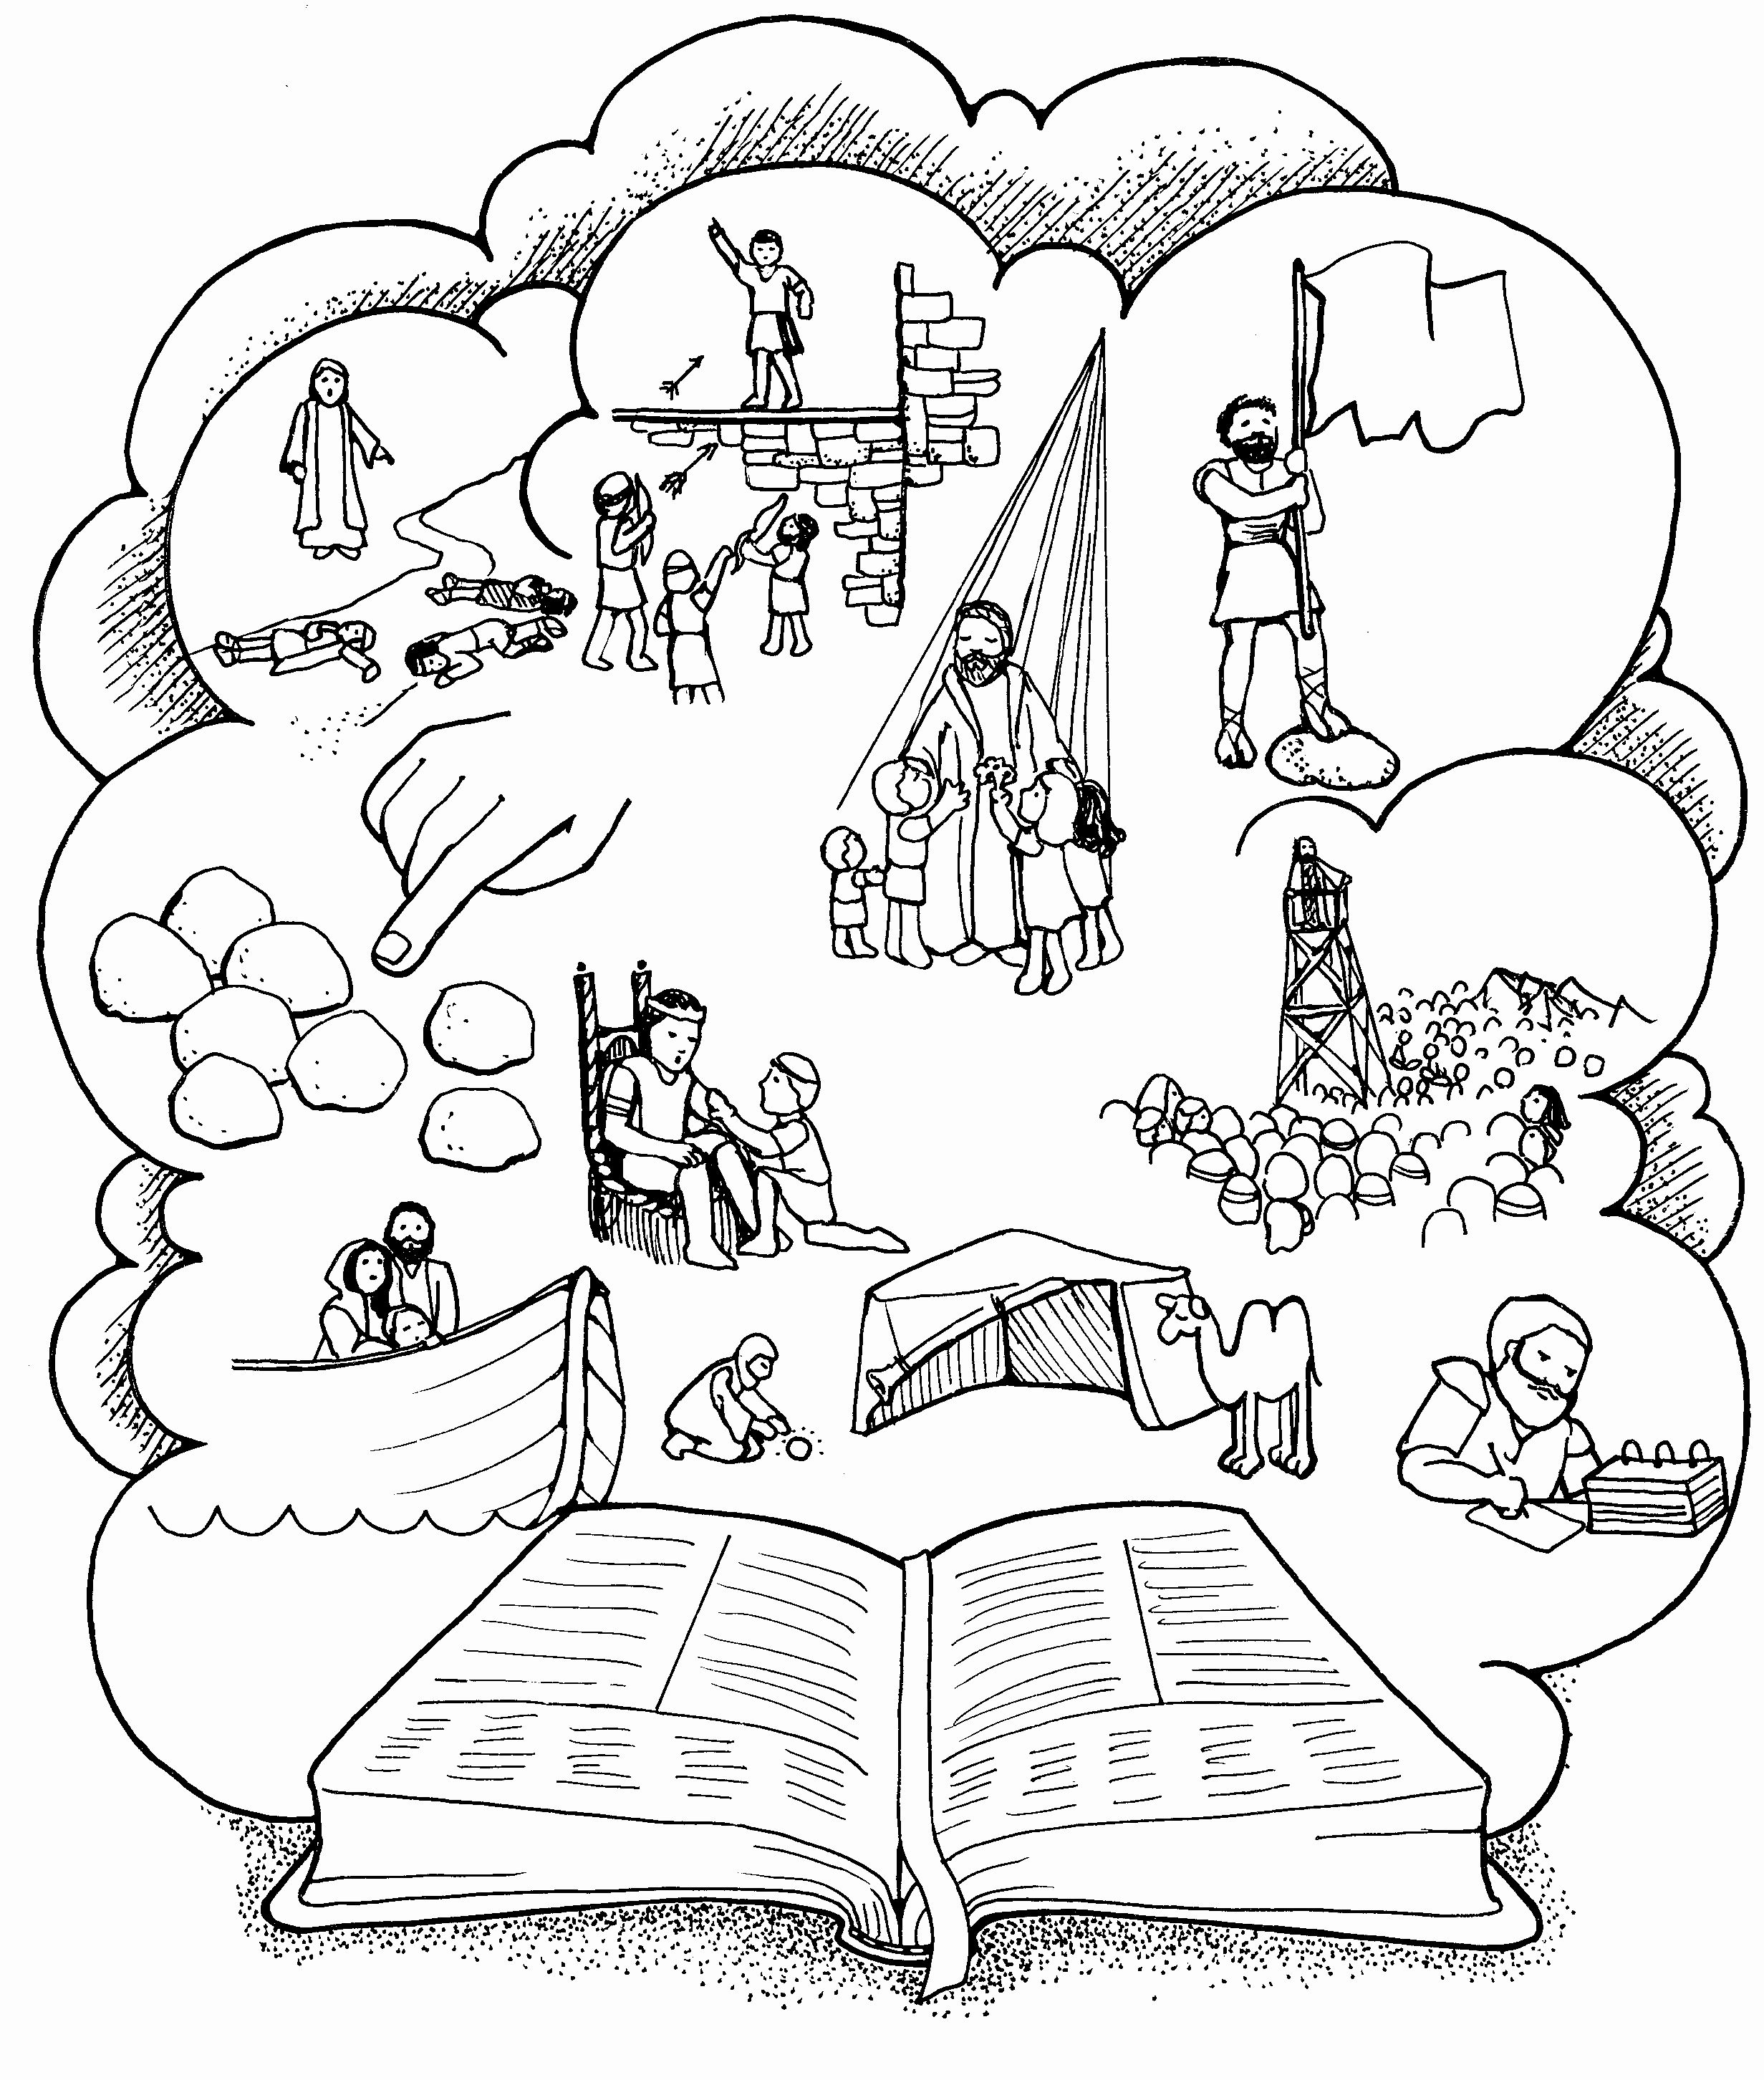 Coloring Pages Of History New Mormon Book Mormon Stories Church Fhe Lds Coloring Pages Kindergarten Coloring Pages Easter Coloring Book